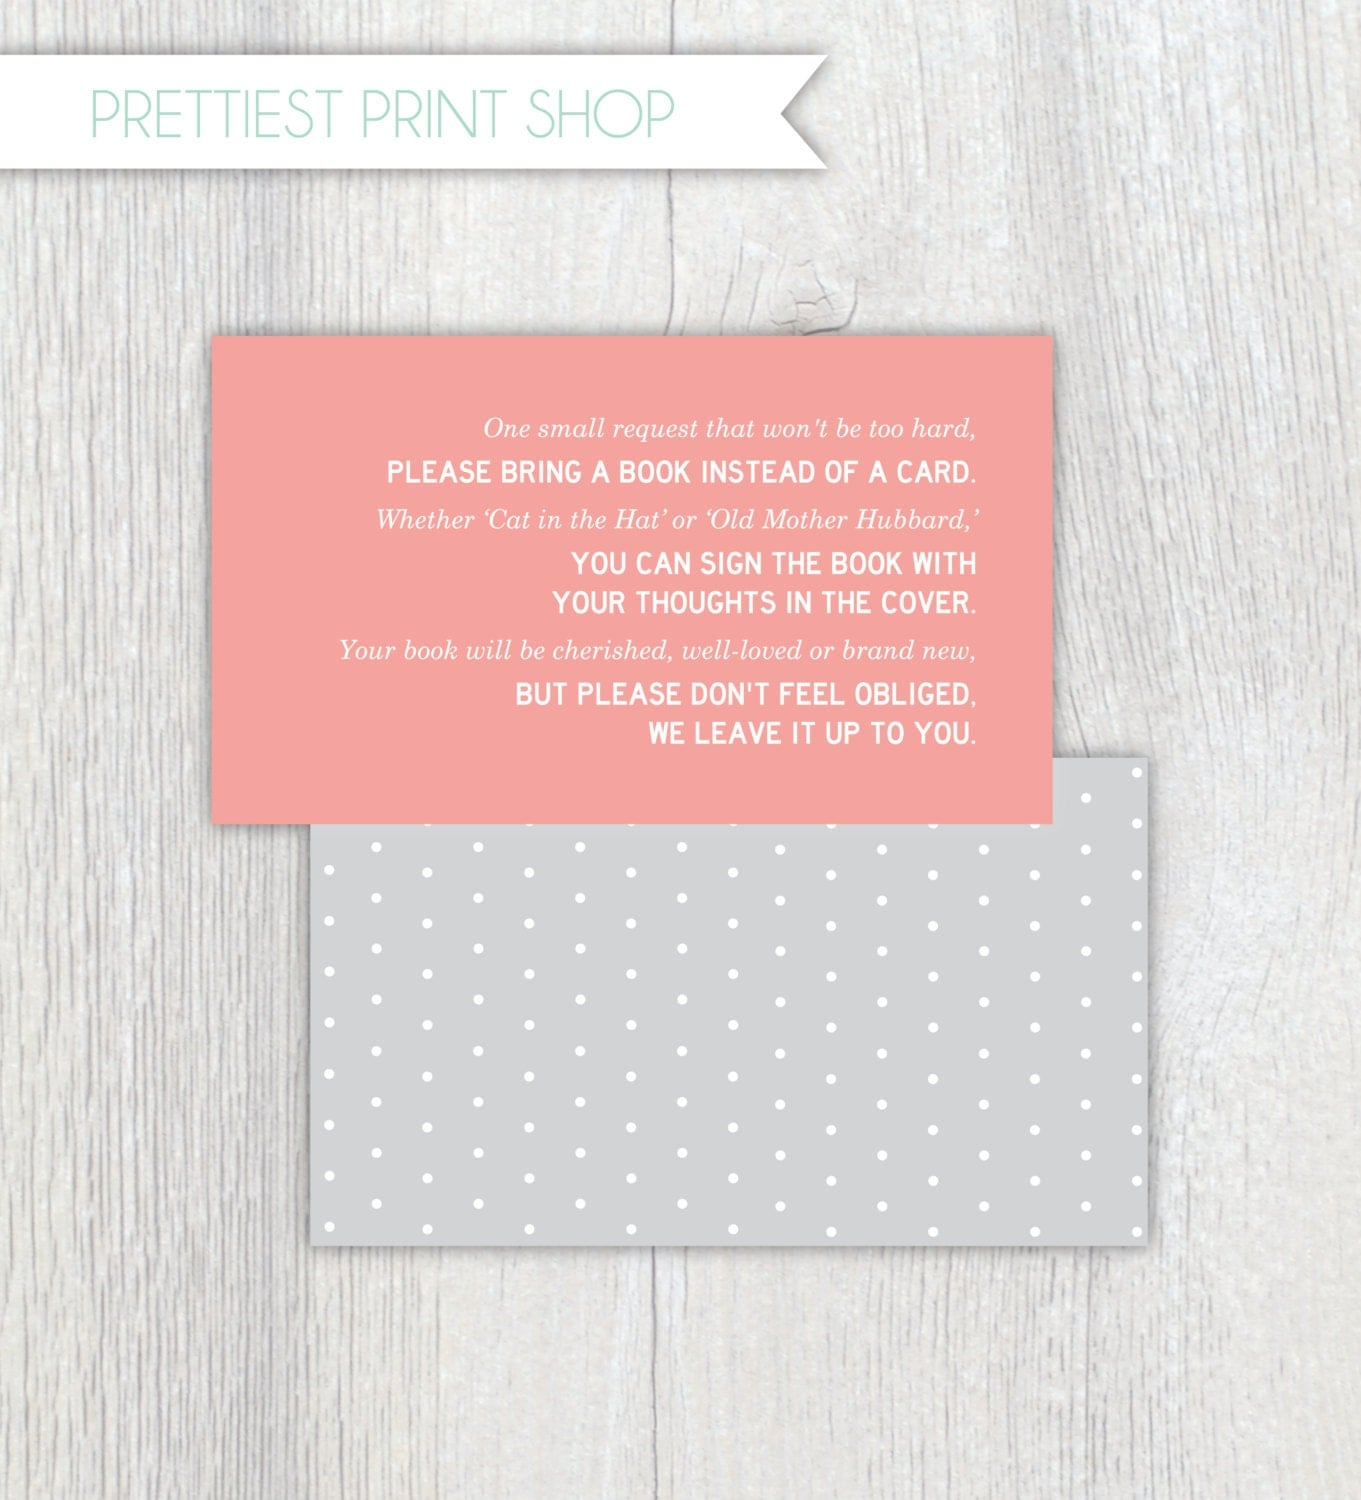 Baby Shower Invite Wording To Bring A Book Book Baby Shower Printable  Invitation Enclosure Baby Shower